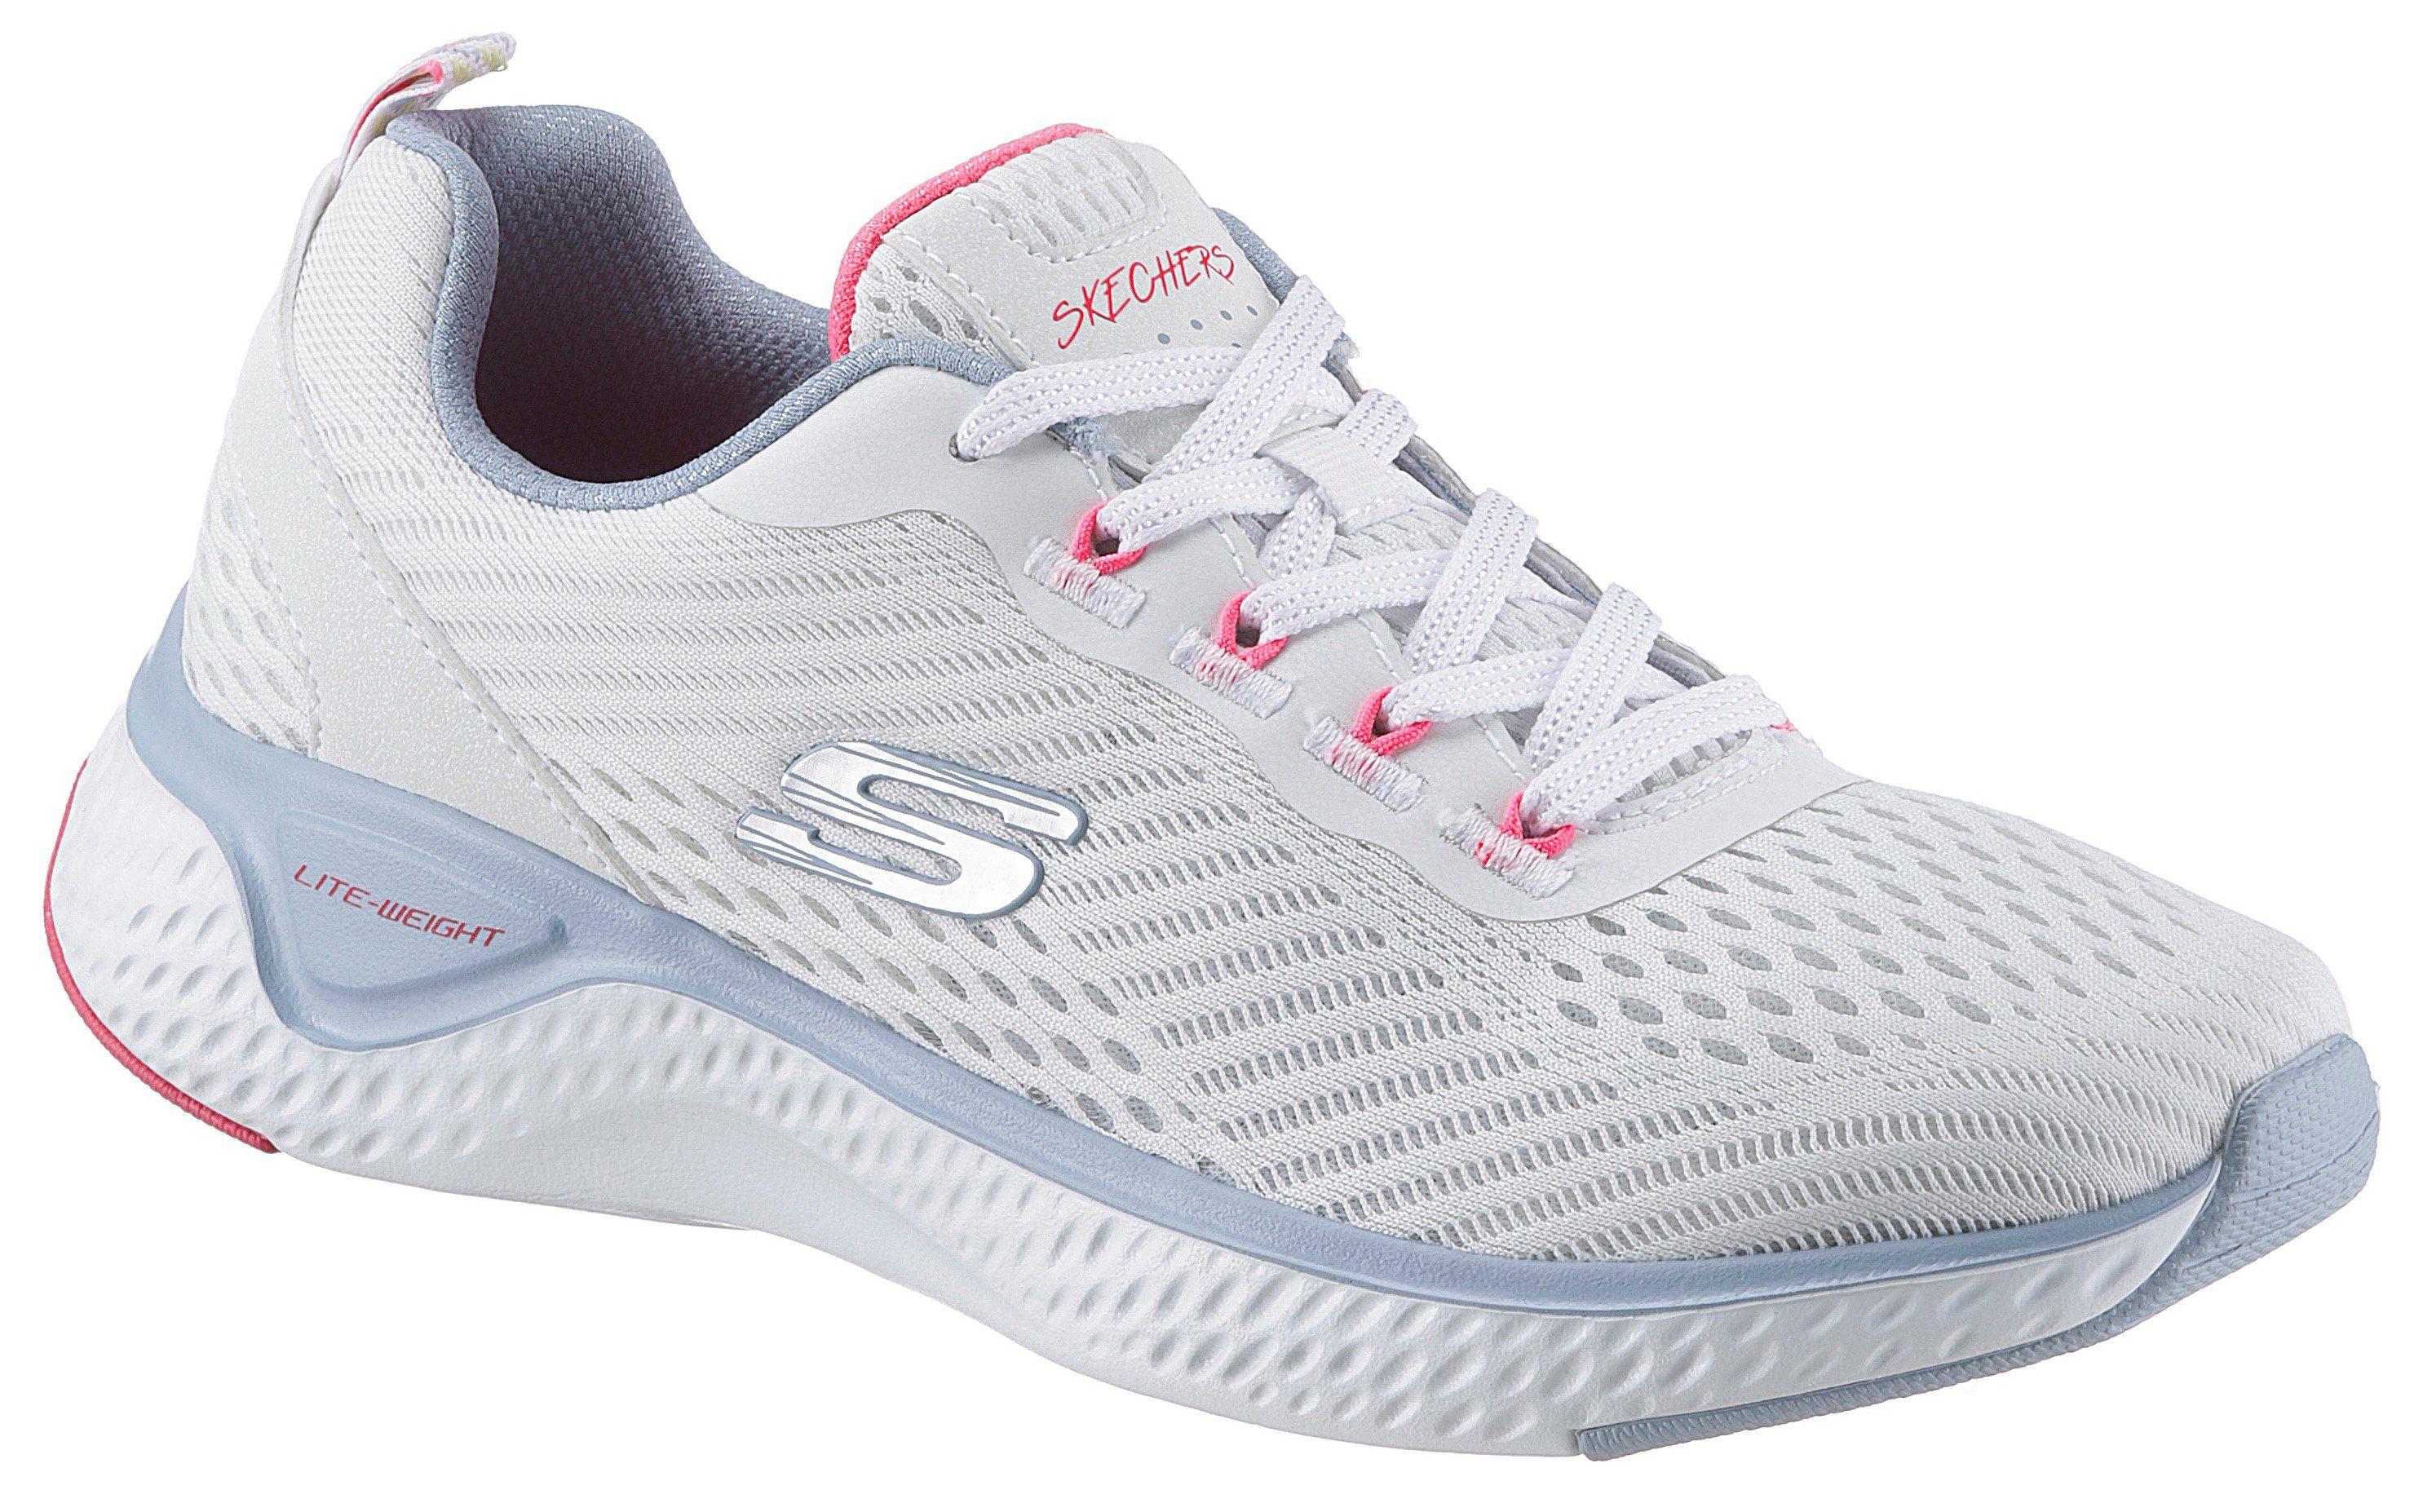 Skechers »Solar Fuse Cosmic View« Sneaker in modischer I8jj3